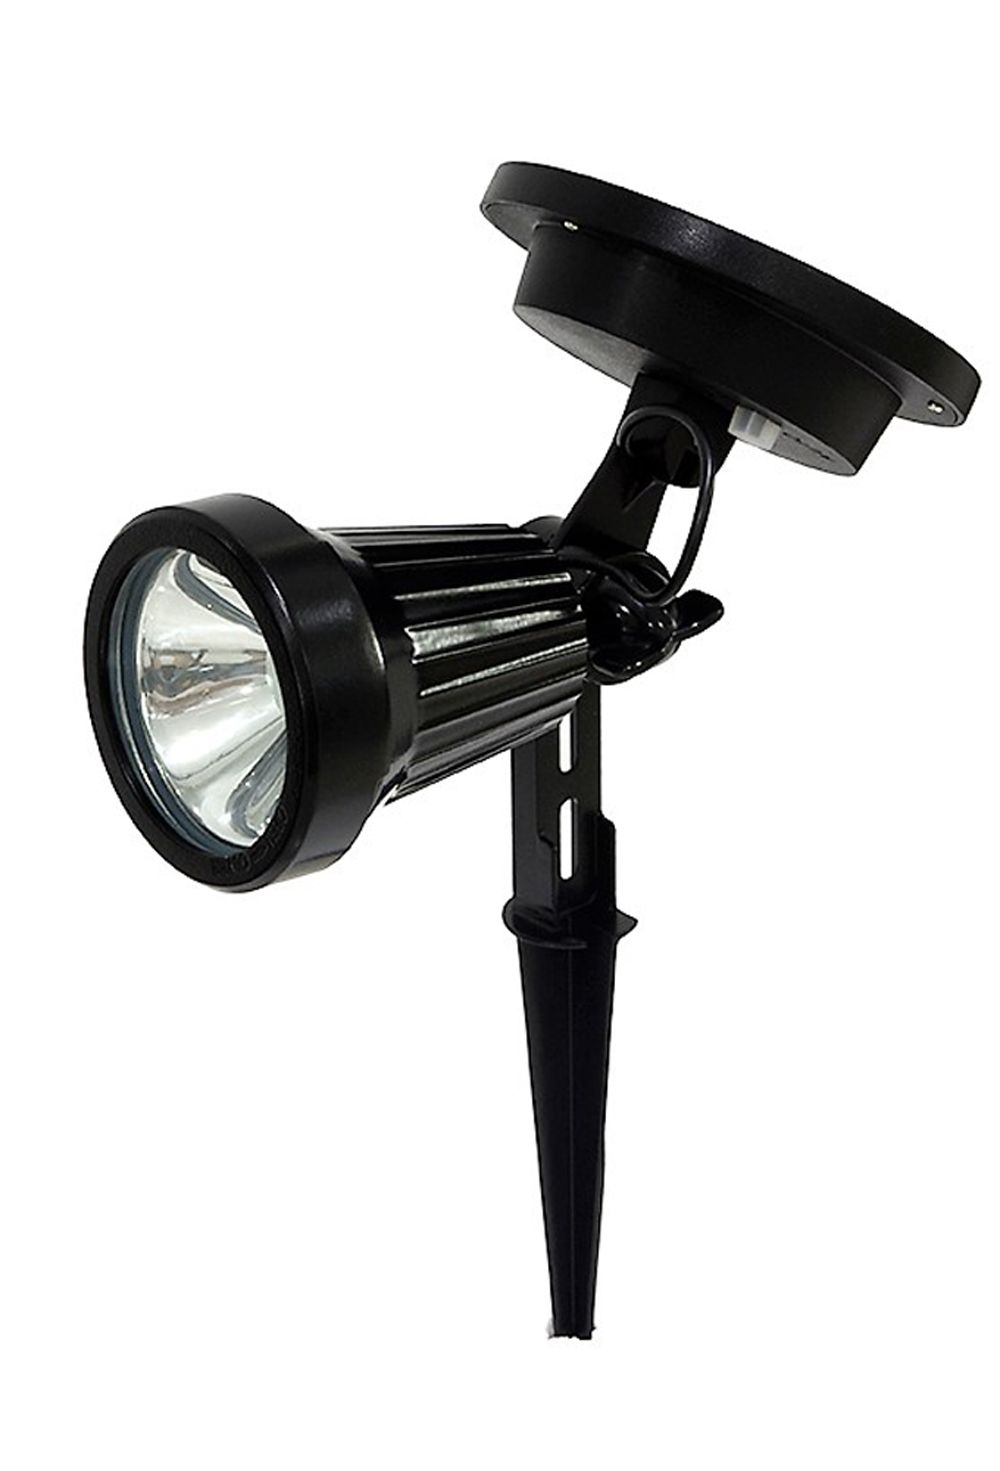 Lowest Price On Classy Caps High Performance Solar Spotlight Pl427